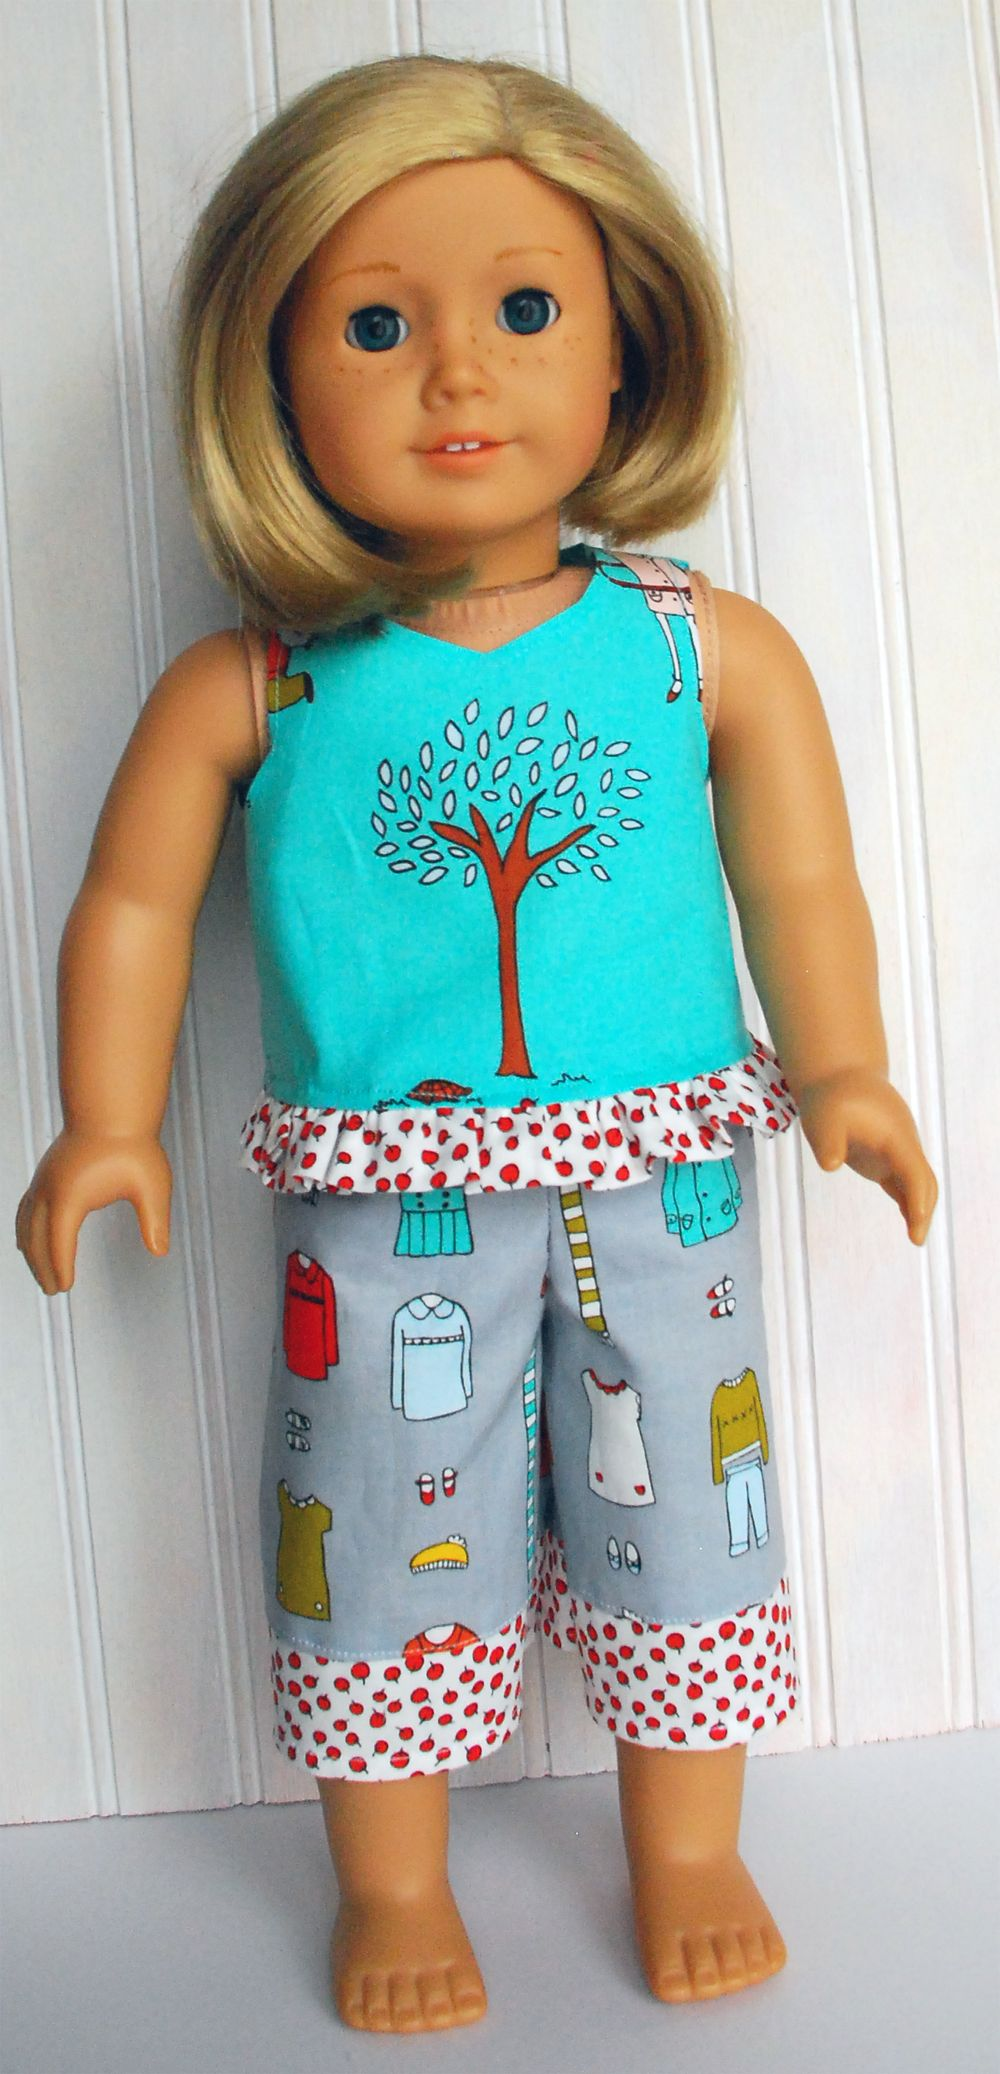 "Free ruffled tank top pattern for 18"" American Girl doll - uses 1 fat quarter, plus a strip of contrast fabric for the ruffle"